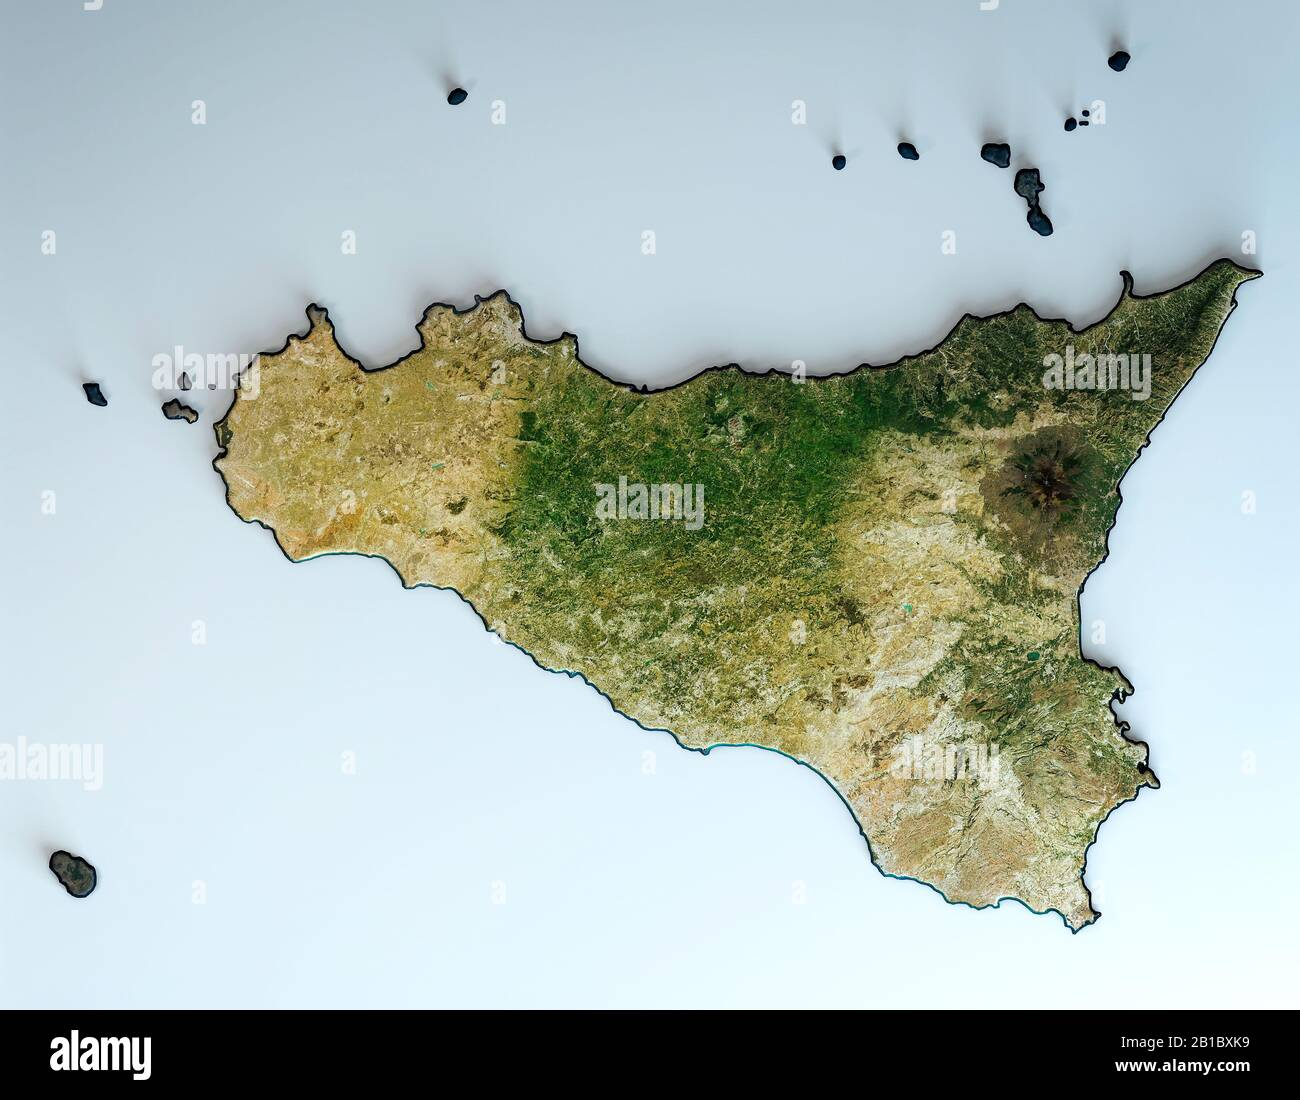 Cartina Sicilia Satellite.Palermo Satellite View Sicily Italy High Resolution Stock Photography And Images Alamy